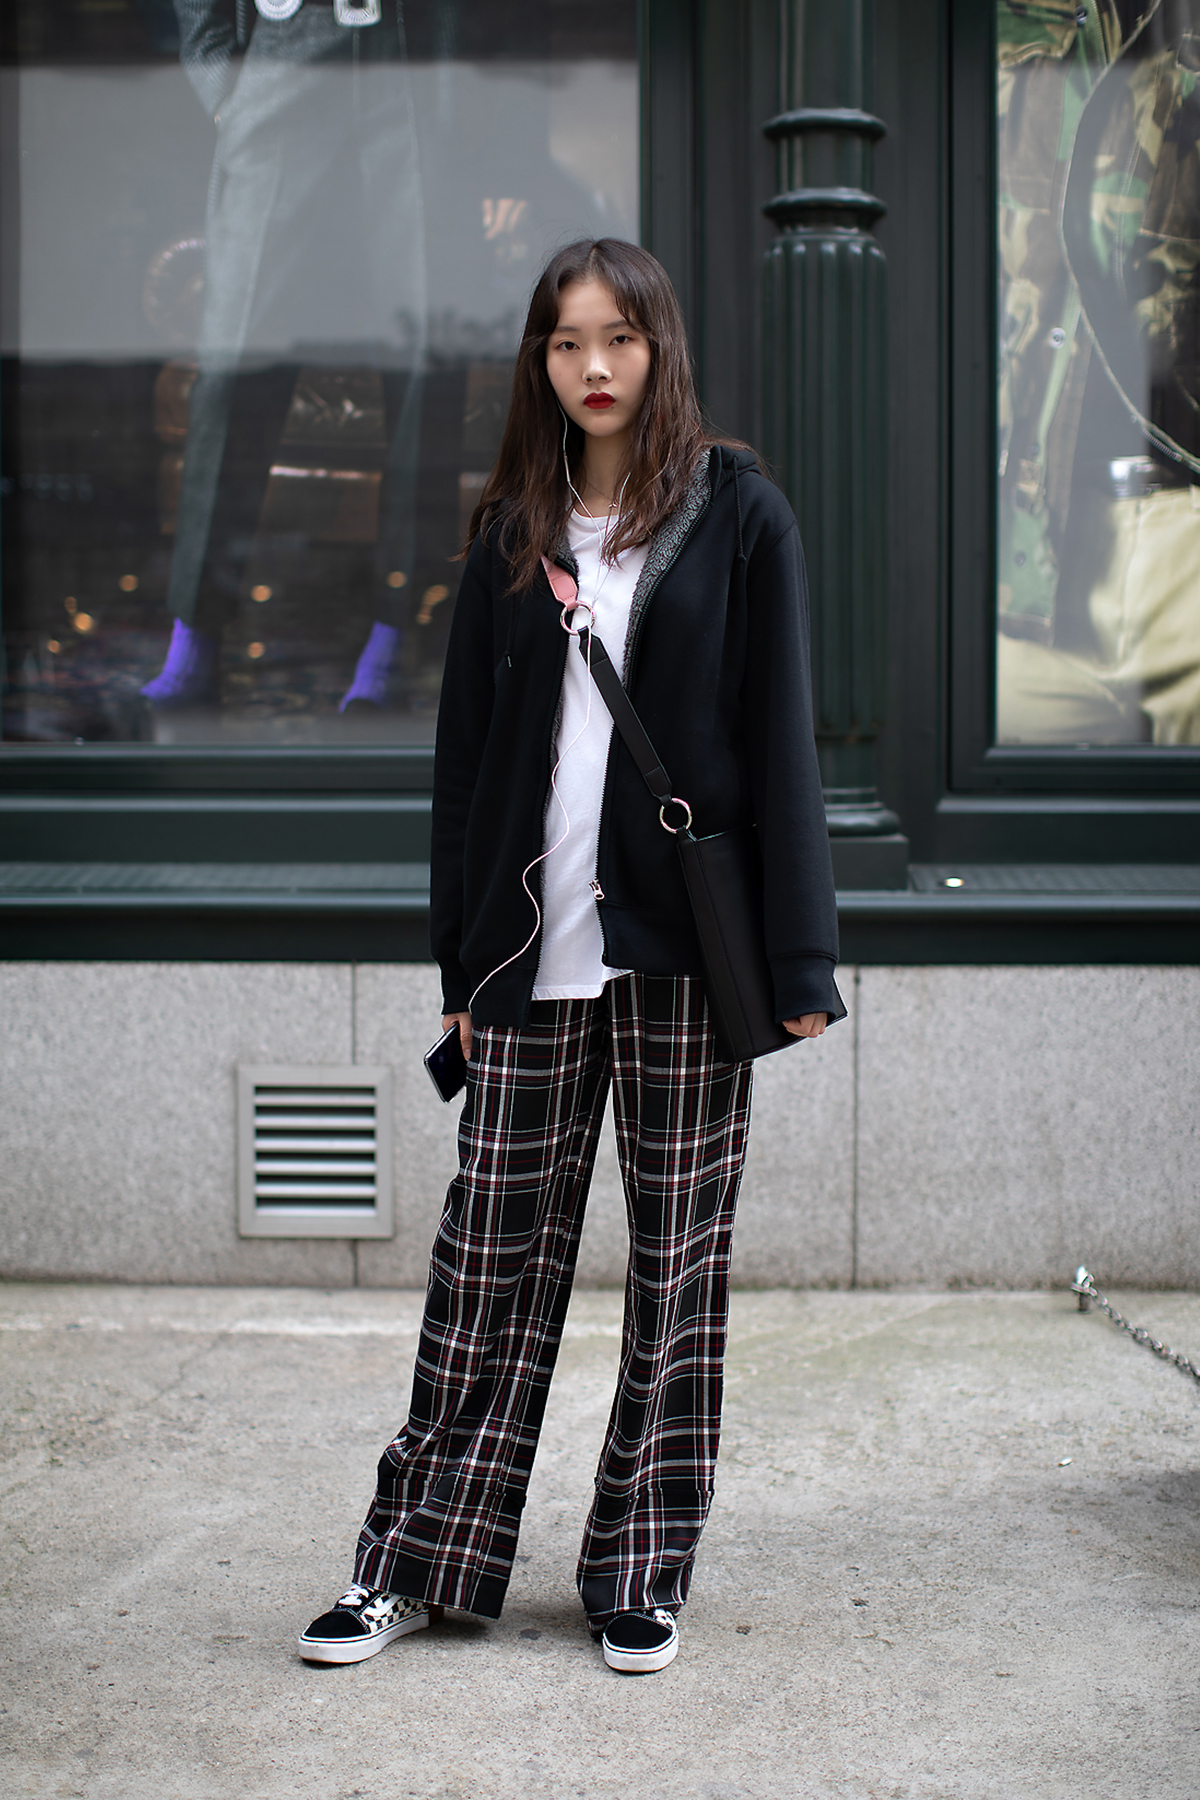 Women fall street style fourth week of october 2018 in seoul 1